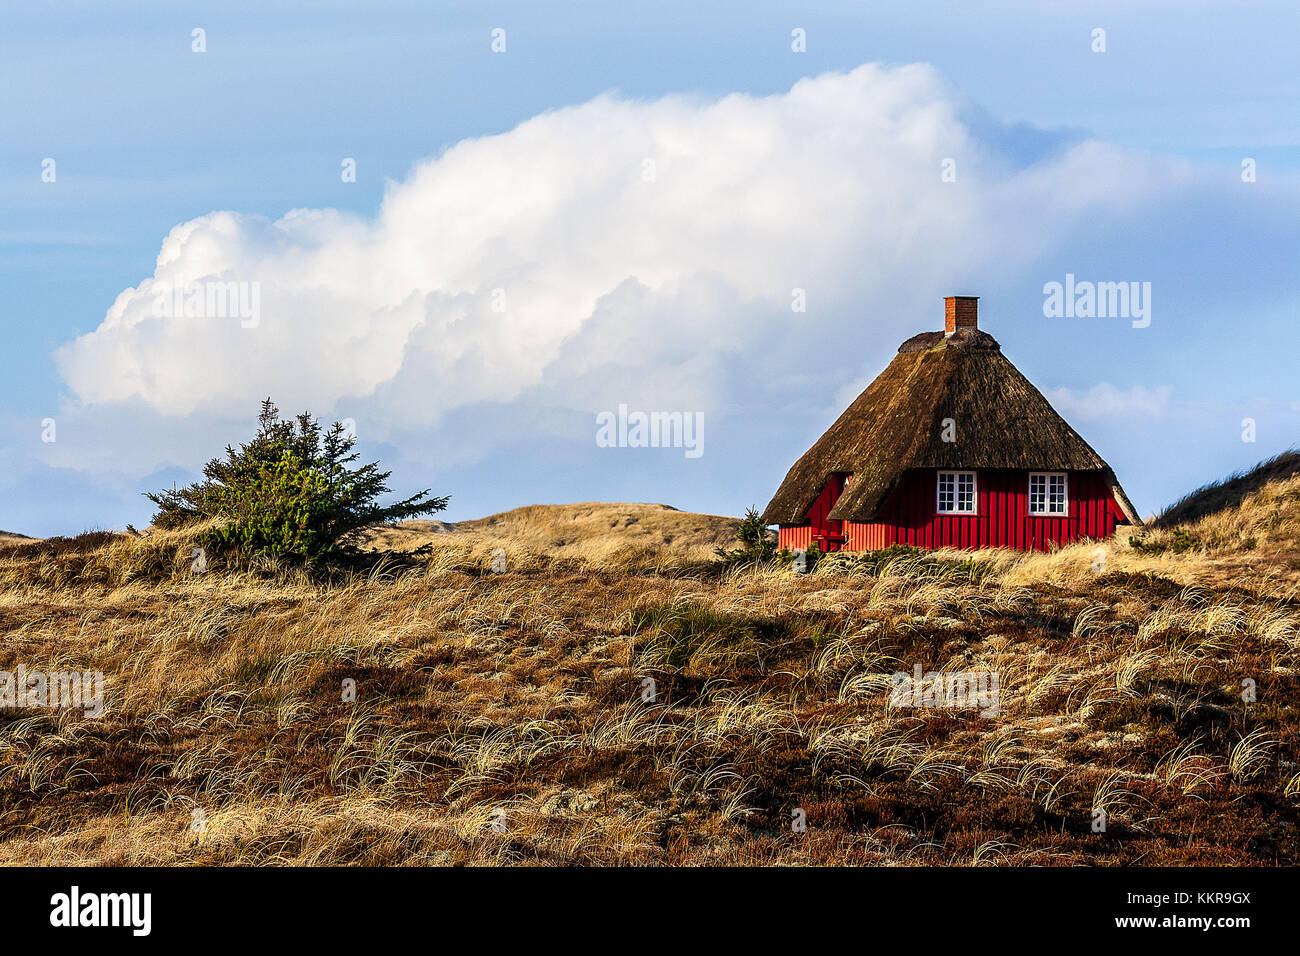 Classical danish house near the village Norre Nebel - Stock Image